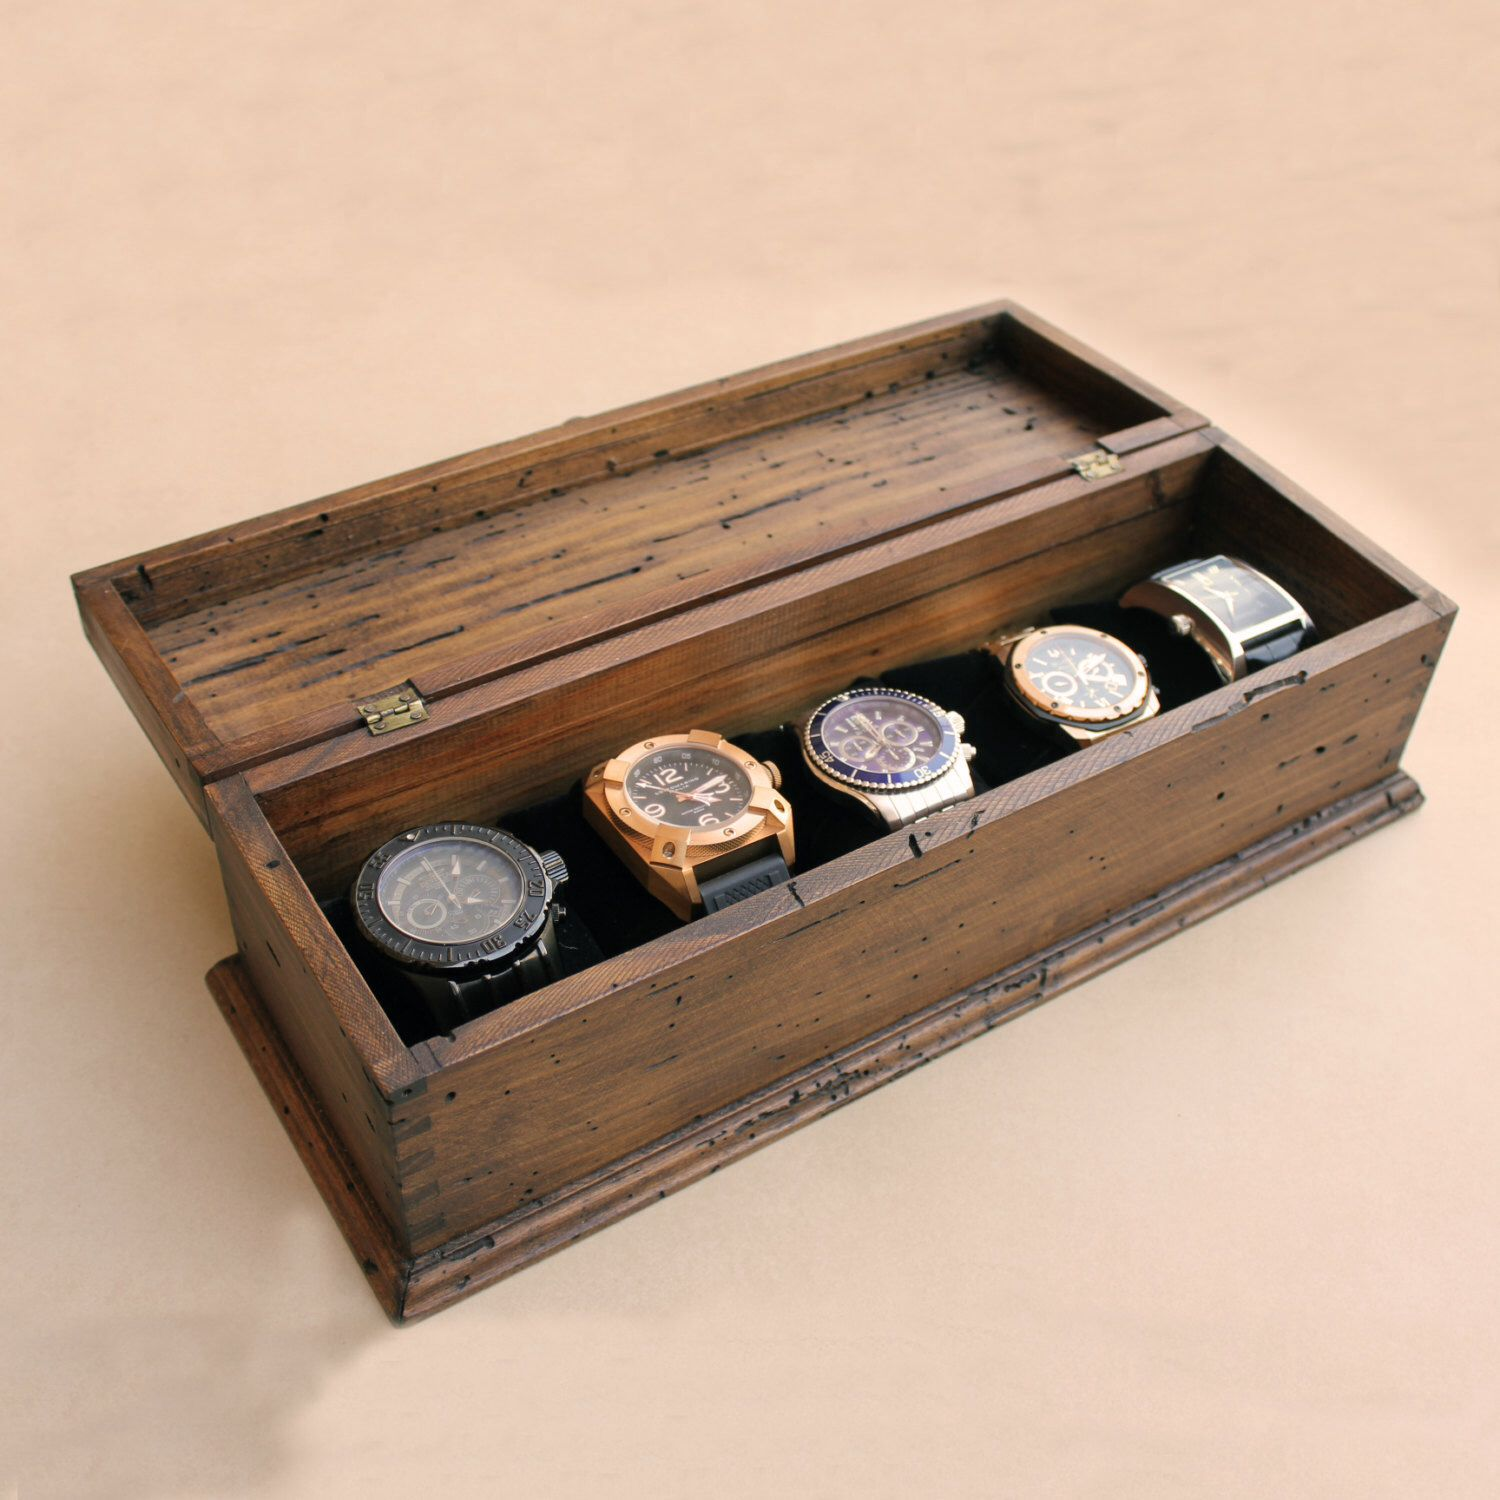 Personalized Rustic Men's Watch Box for 5 watches by